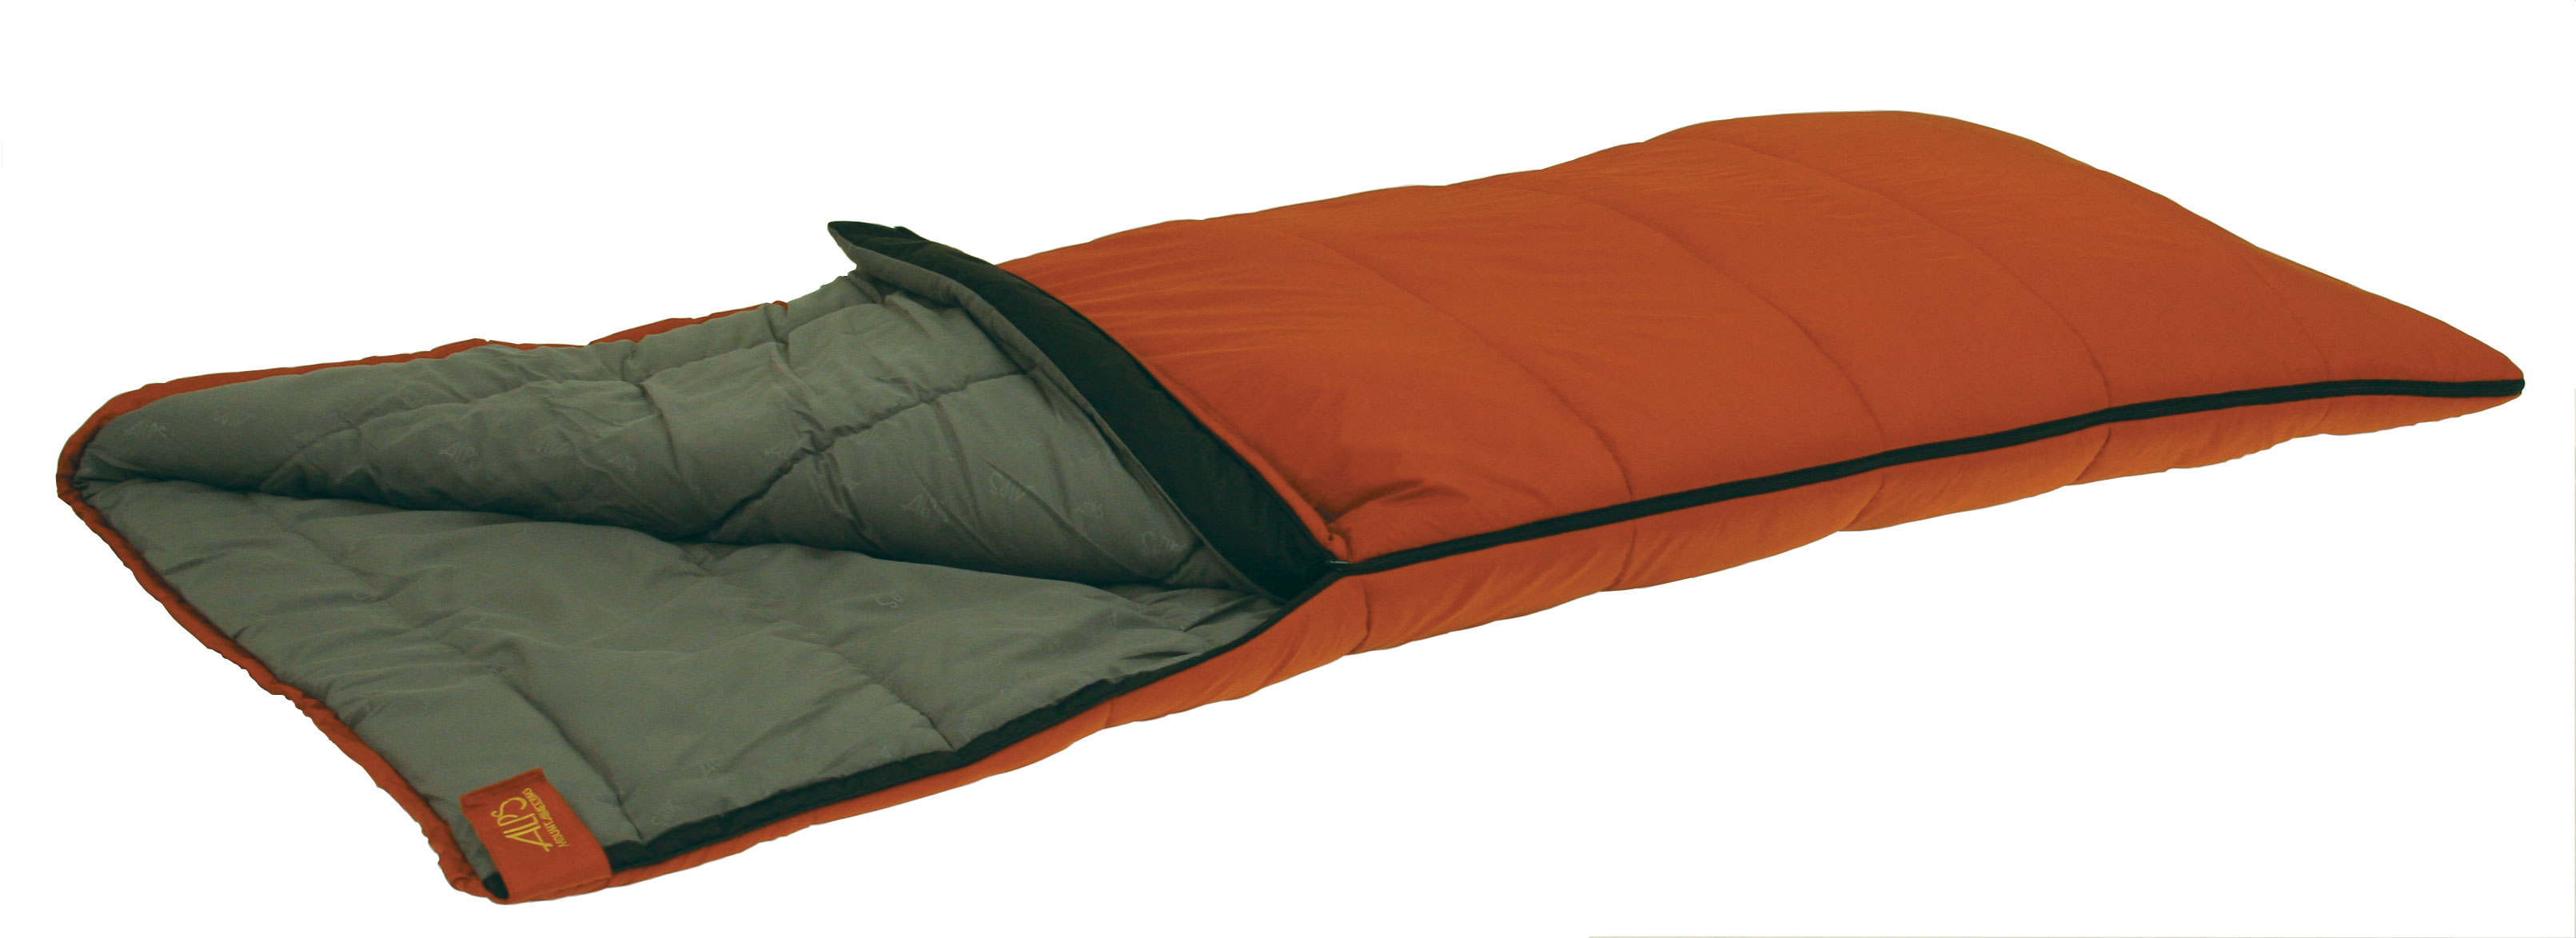 "Camp and Hike The Crater Lake is quickly becoming one of our most popular rectangle bags. It uses 2-layer offset construction to eliminate cold spots. It is composed of Techloft+ Insulation. Techloft+ Insulation consists of multi-hole staple-length micro-denier fibers that have a siliconized finish for maximum insulation, loft, and compactness. This sleeping bag series is great for camping when weather conditions are cold and you want to stay warm.Key Features of the Alps Crater Lake 20 Long Sleeping Bag: 3 Temperature Choices - 2 Lengths 2-Layer Construction TechLoft+ Insulation Nylon Oxford Standard Stuff Sack Included Outer Material: 210T Nylon Ripstop Liner: MicroFiber Liner Color: Grey Shape: Rectangle Zipper: Large #8 Length: Long Dimensions: 33""x 84"" Fill: 3.75 lb TechLoft+ Total Weight: 6 lb 2 oz - $69.95"